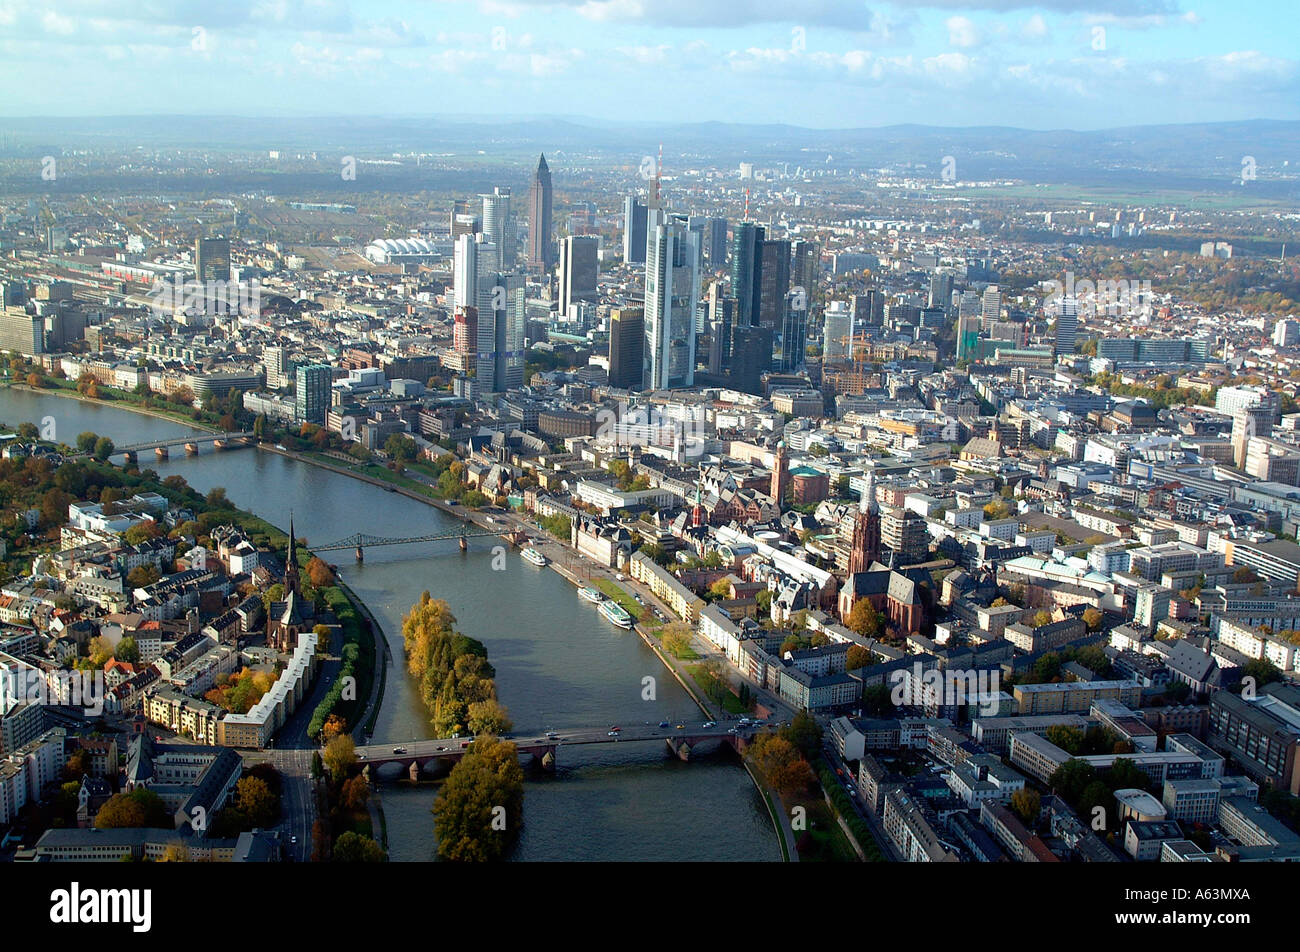 Aerial View Of Buildings And River In City Main River Frankfurt - Hessen germany